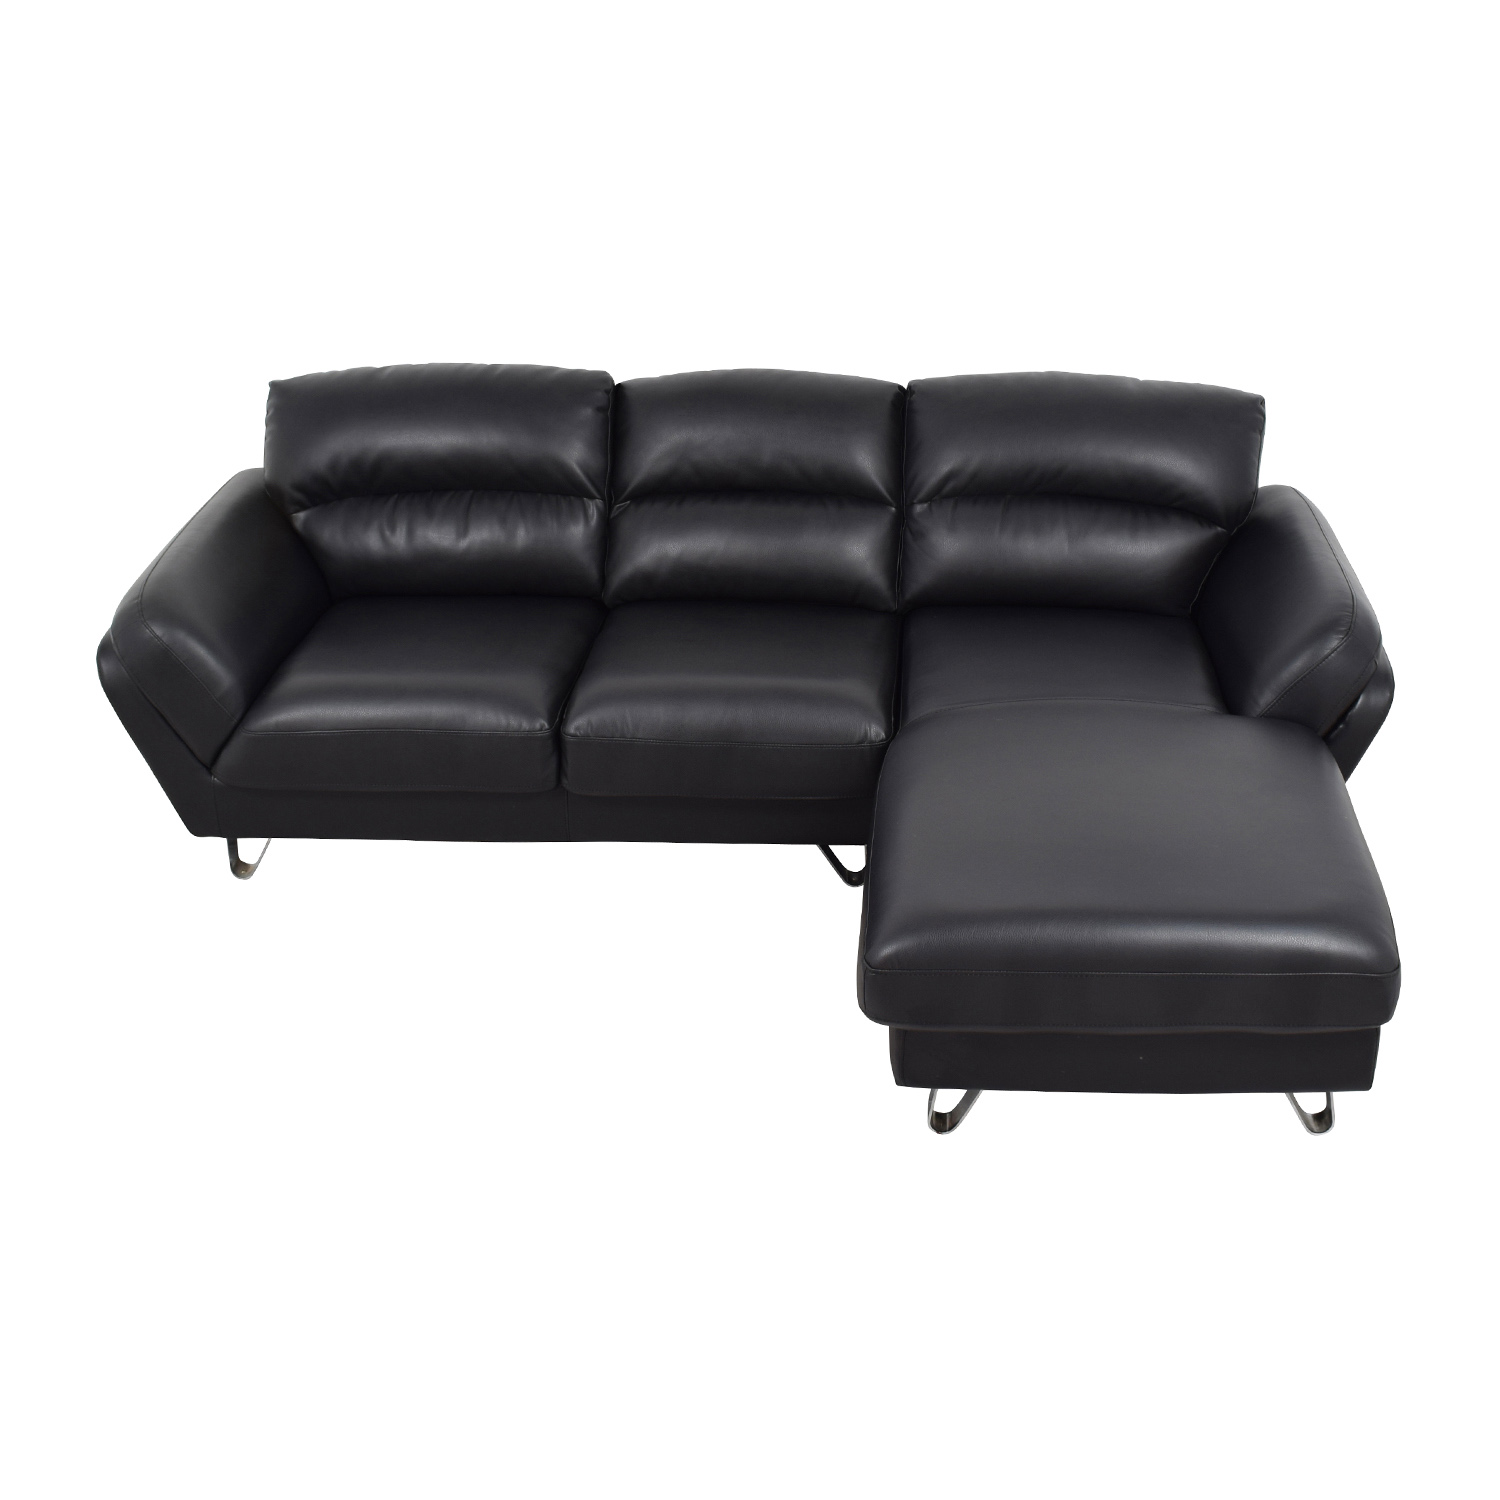 Contemporary Faux Leather Two-piece Sectional Sofa sale